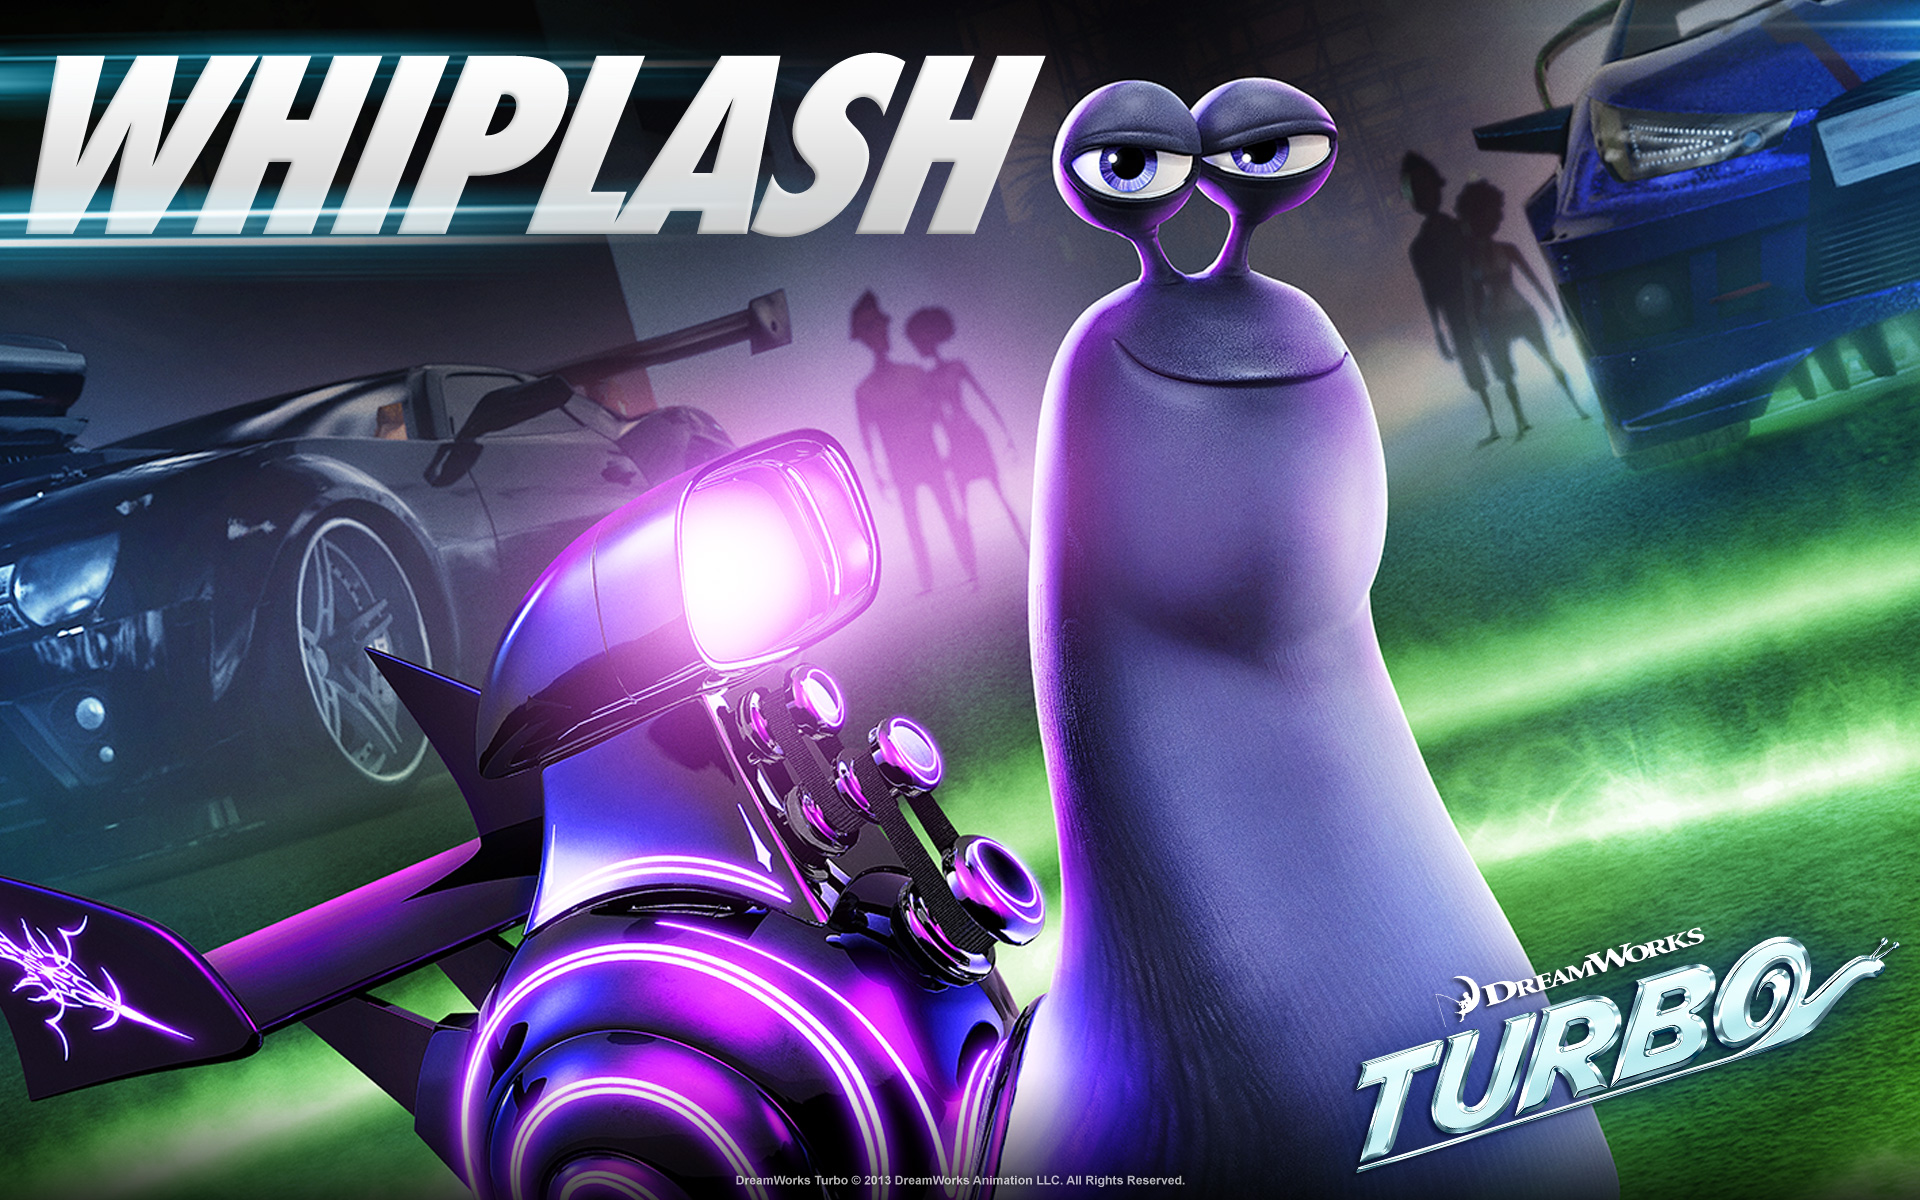 download turbo movie background 36773 1920x1200 px high definition